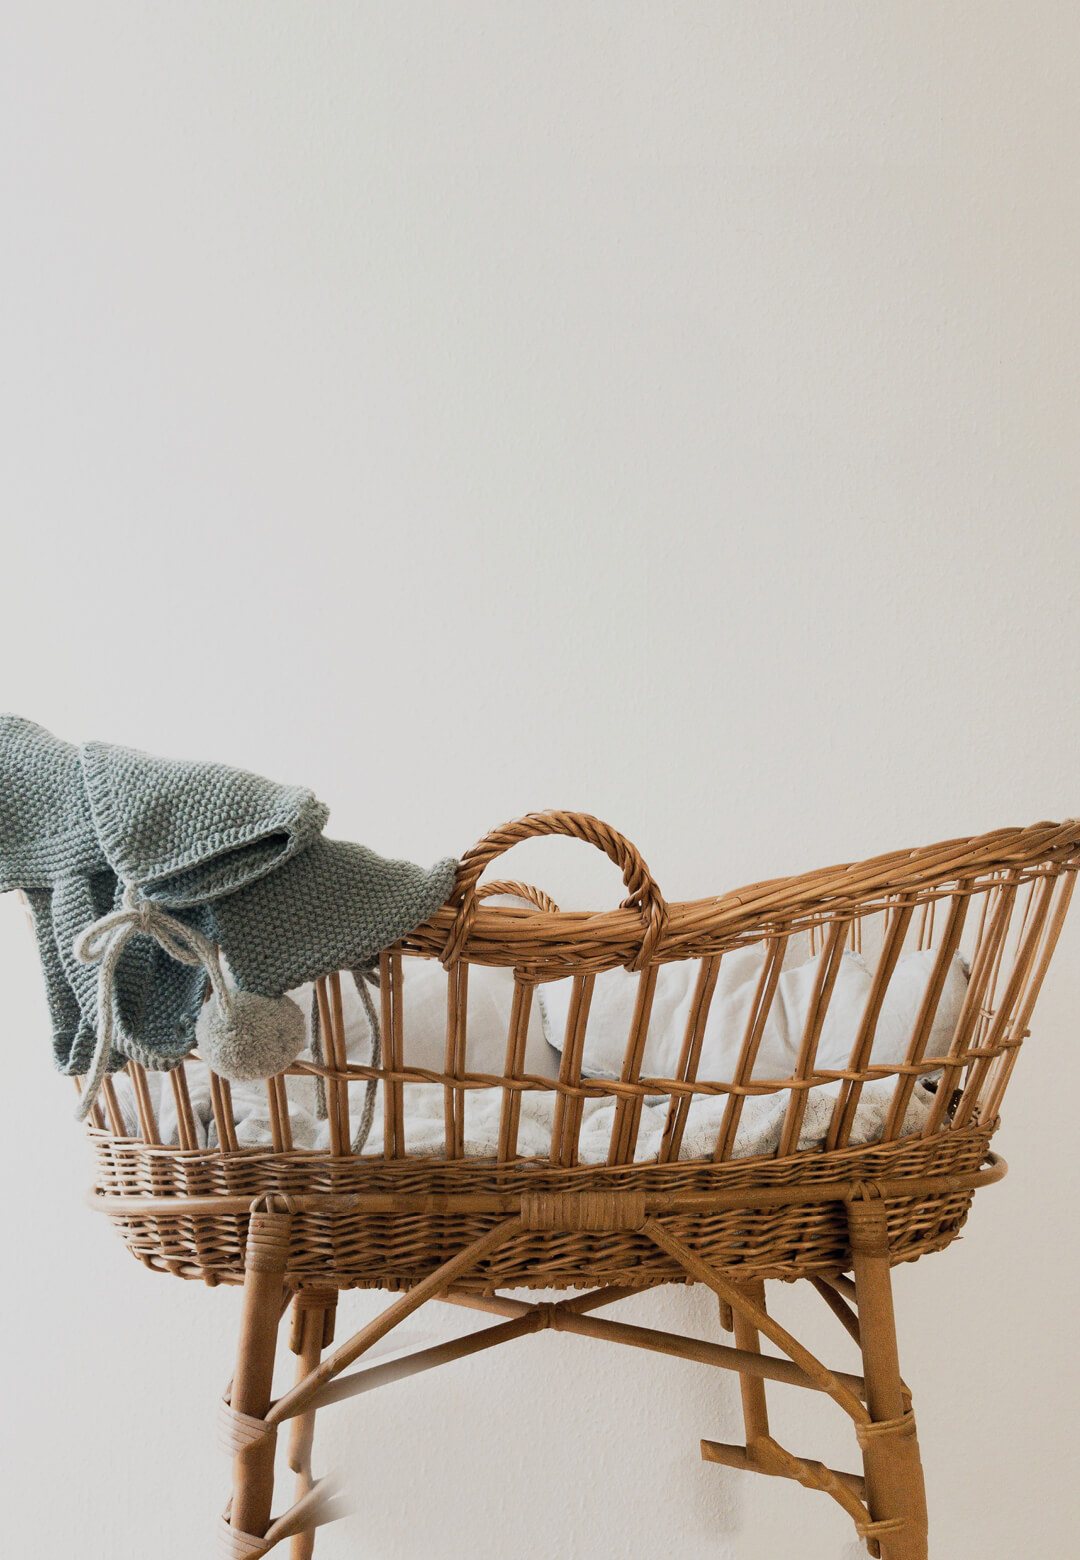 One has to keep in mind that these products while designed primarily to accommodate the body of infants and children are handled mostly by adults | Infant products design | STIRworld